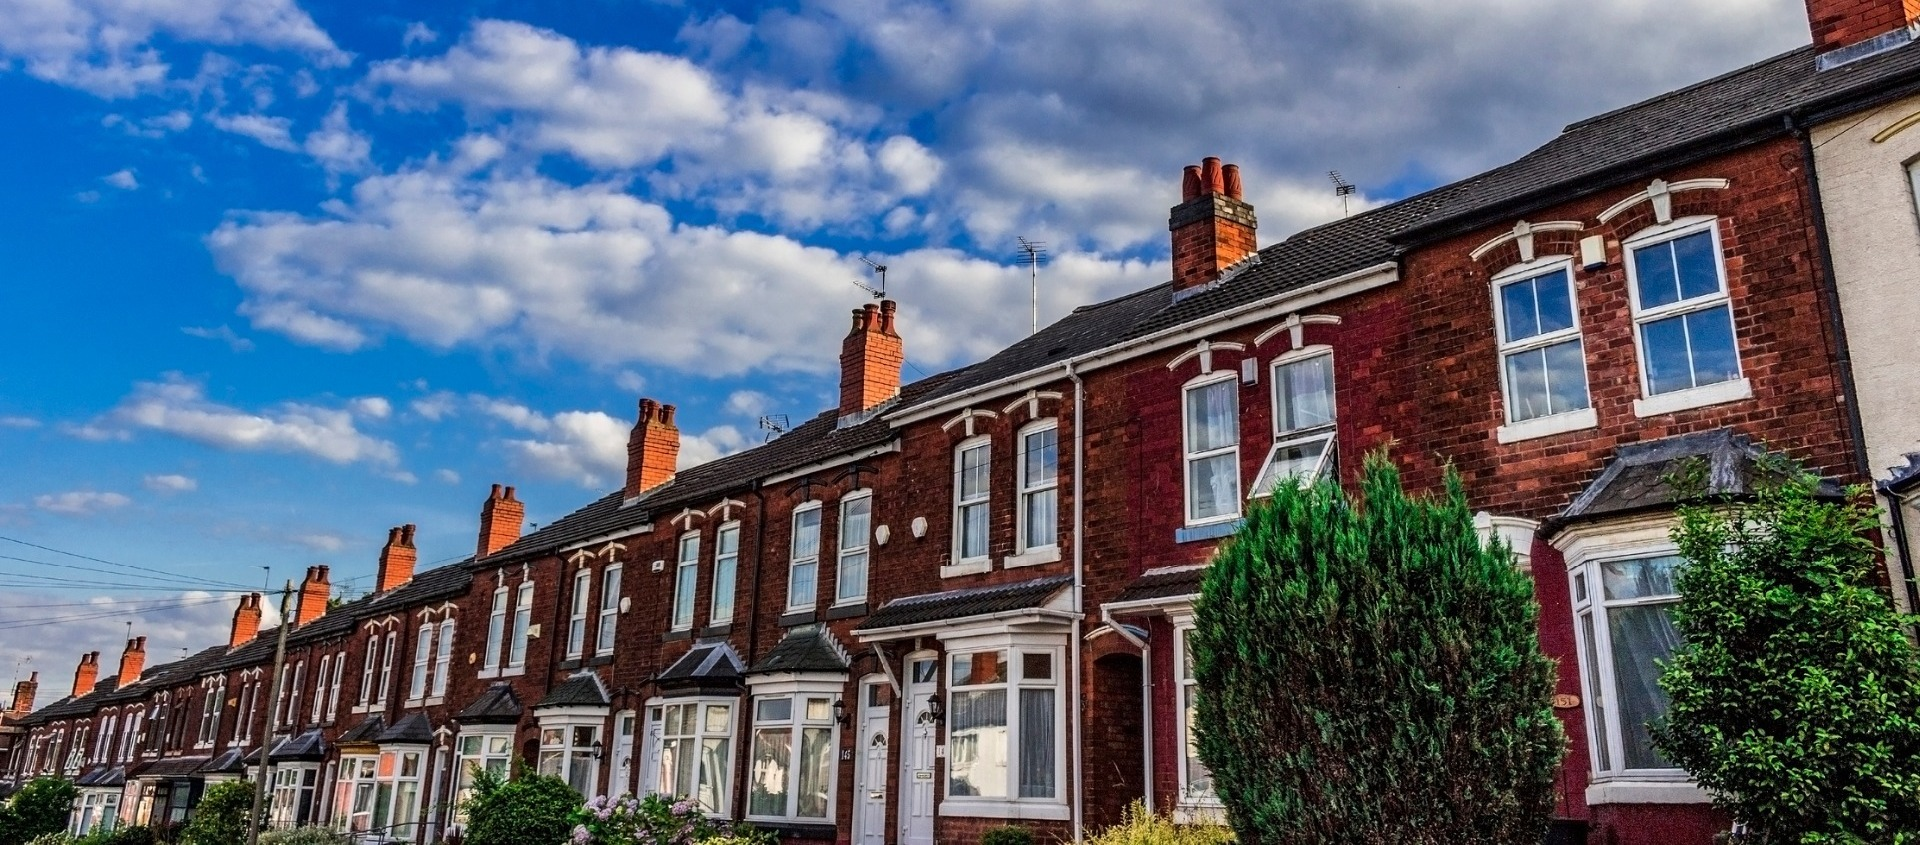 Row of terraced houses.